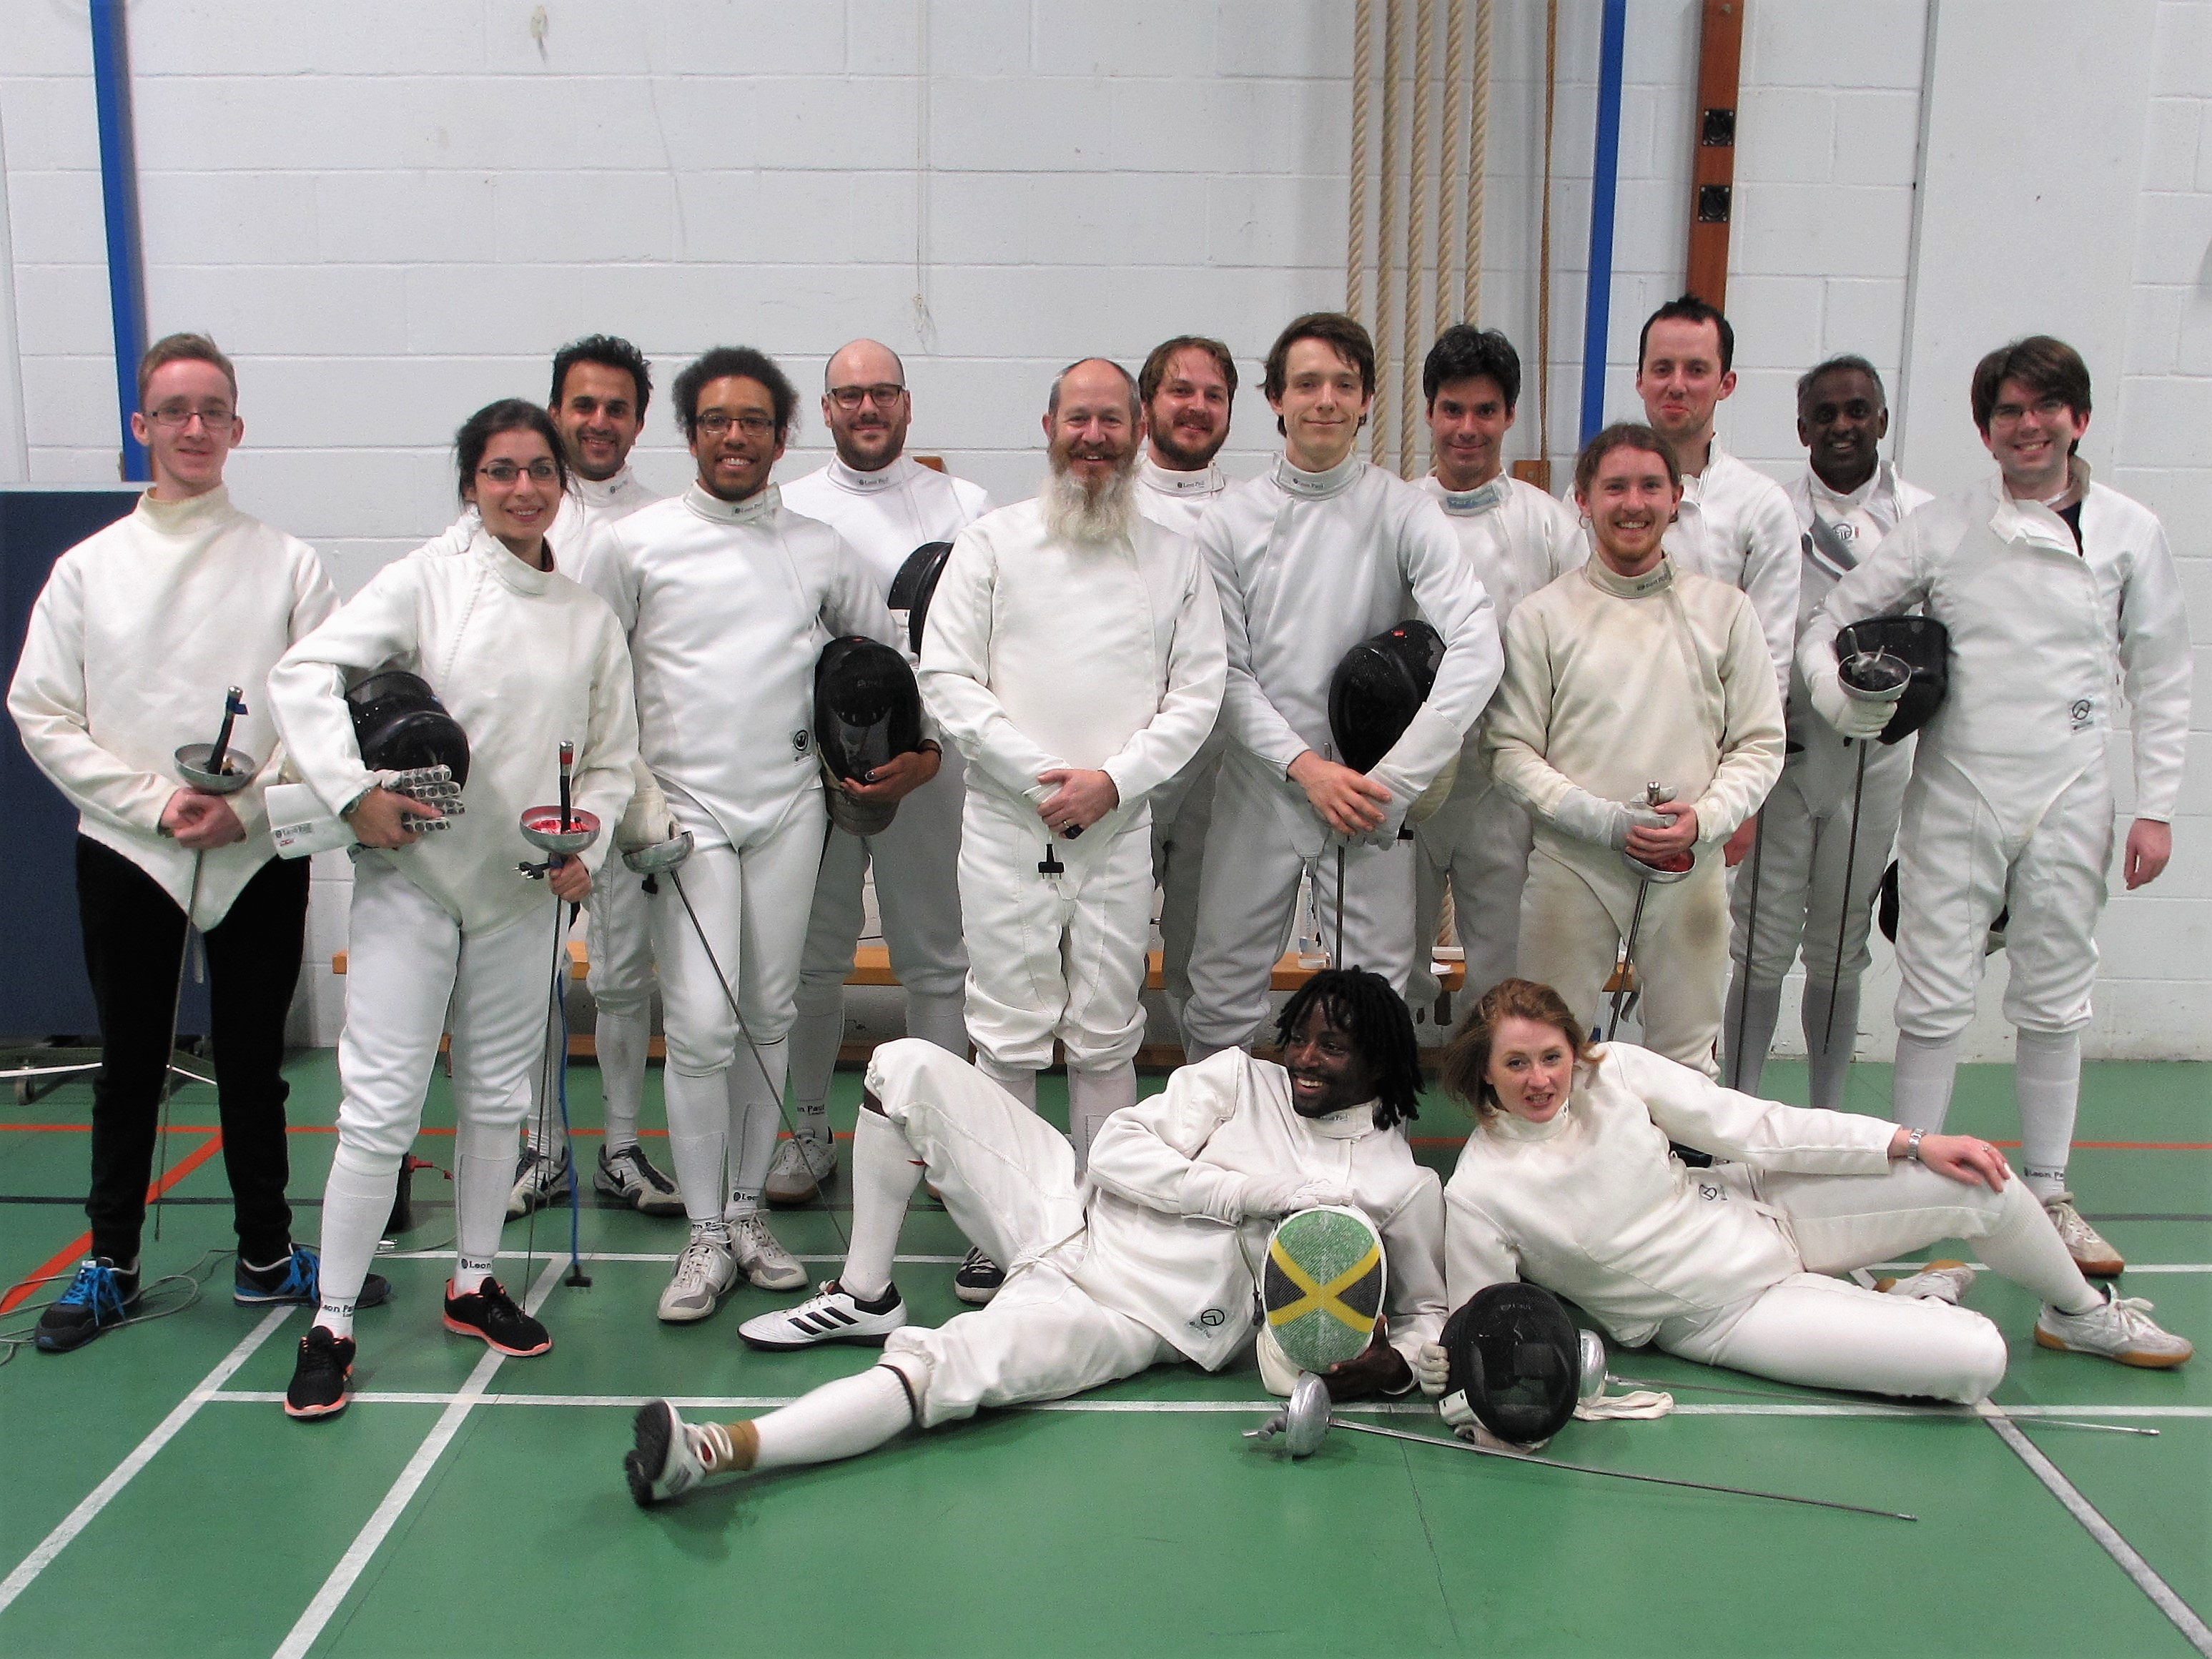 Blackheath vs Morley Epee teams 1st Nov 18